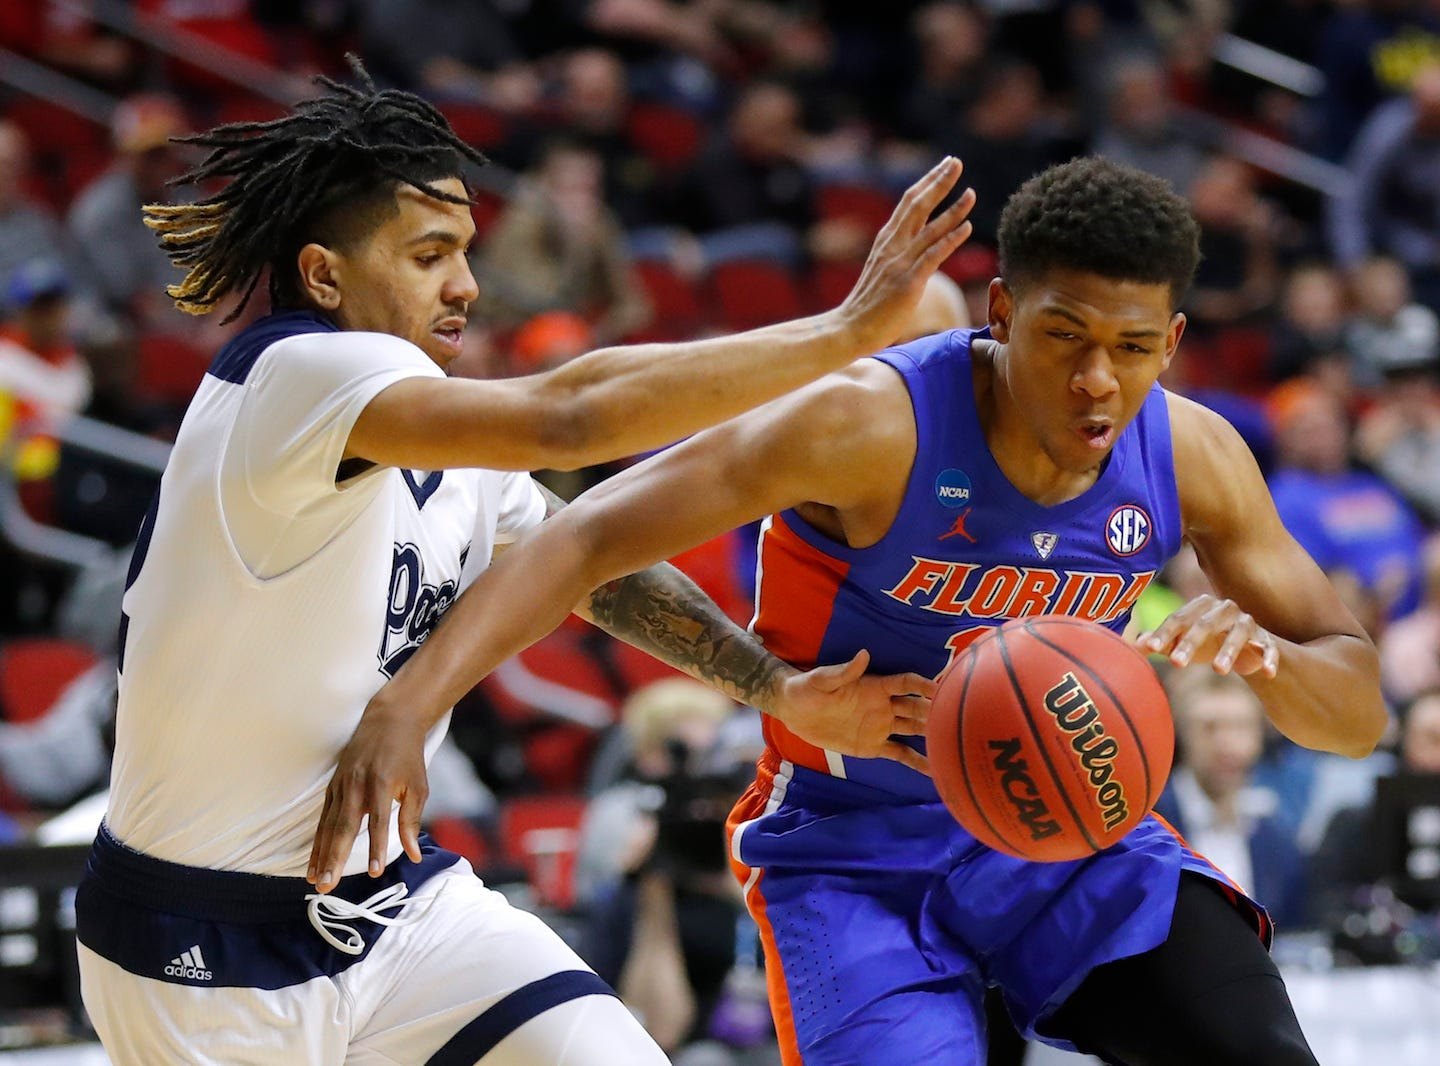 Florida guard Noah Locke drives past Nevada's Jazz Johnson, left, during Thursday's NCAA Tournament game in Des Moines.